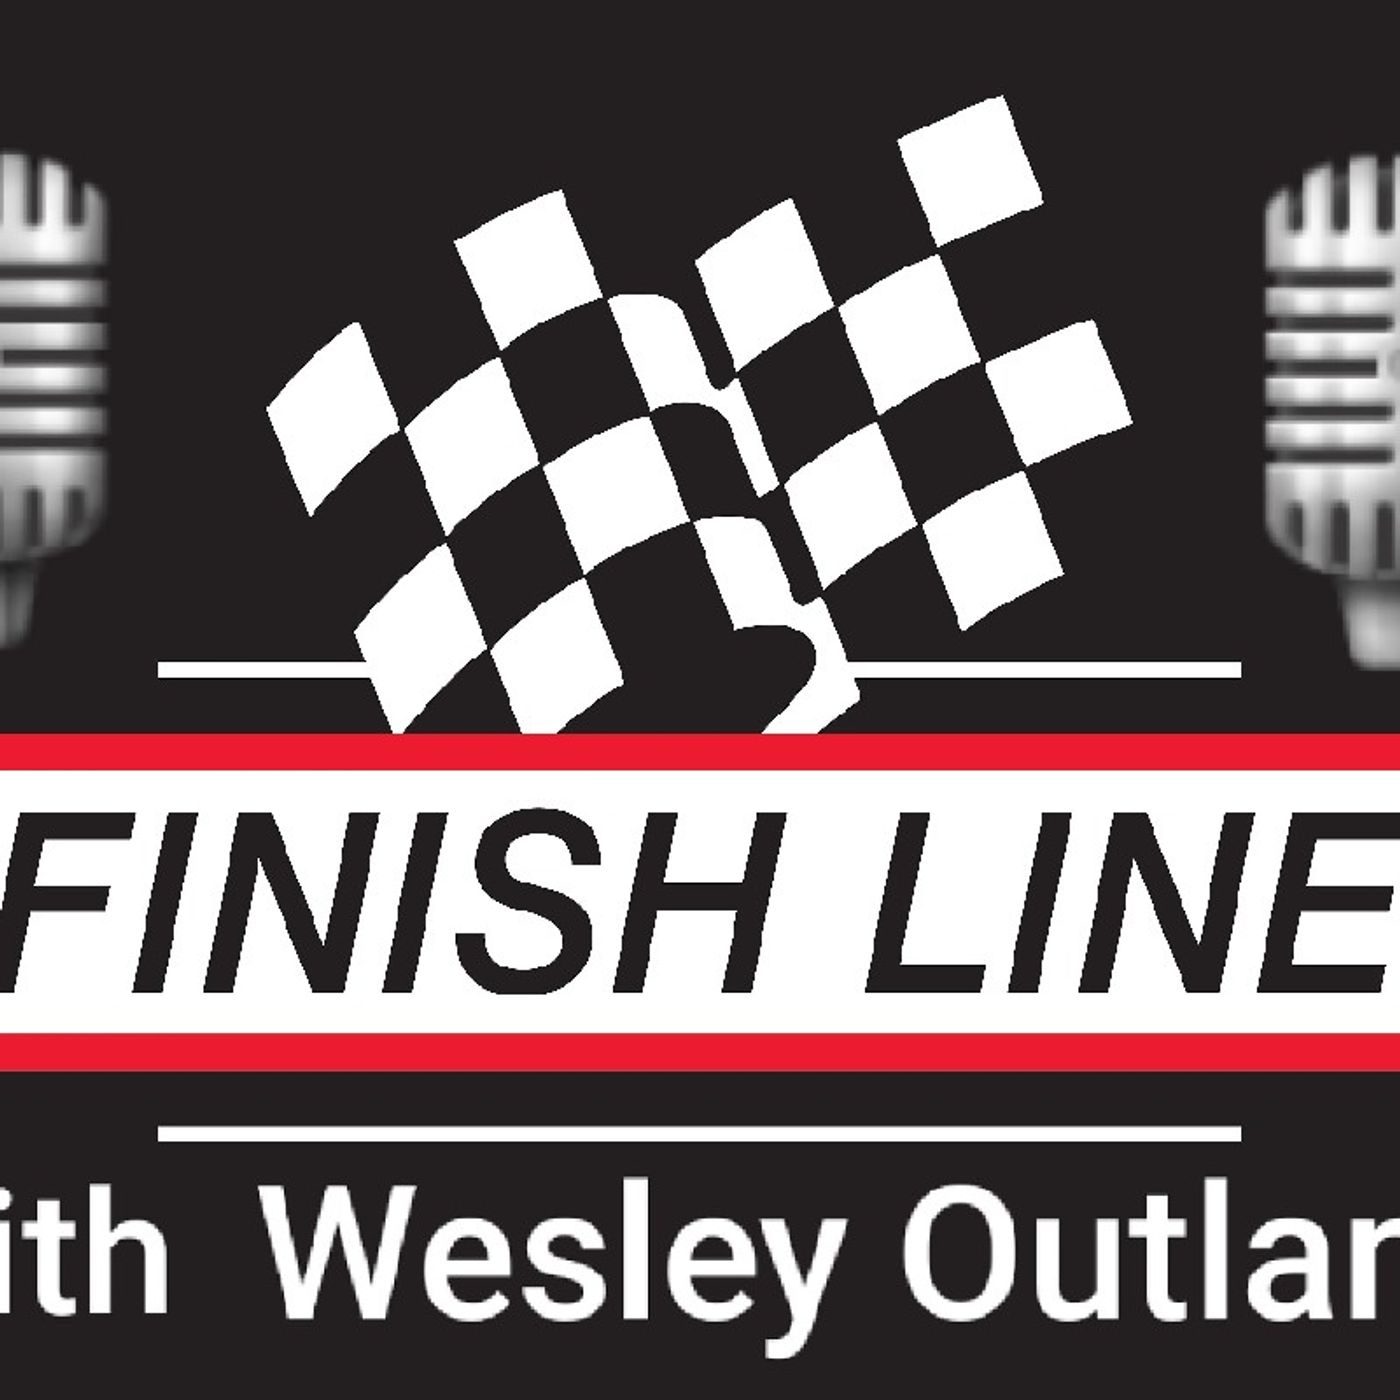 July 24th Episode of the #FinishLine Motorsports Show w/ guests Bobby Pierce, Connor Hall & Zach Dohm! 🏁🎙🏁